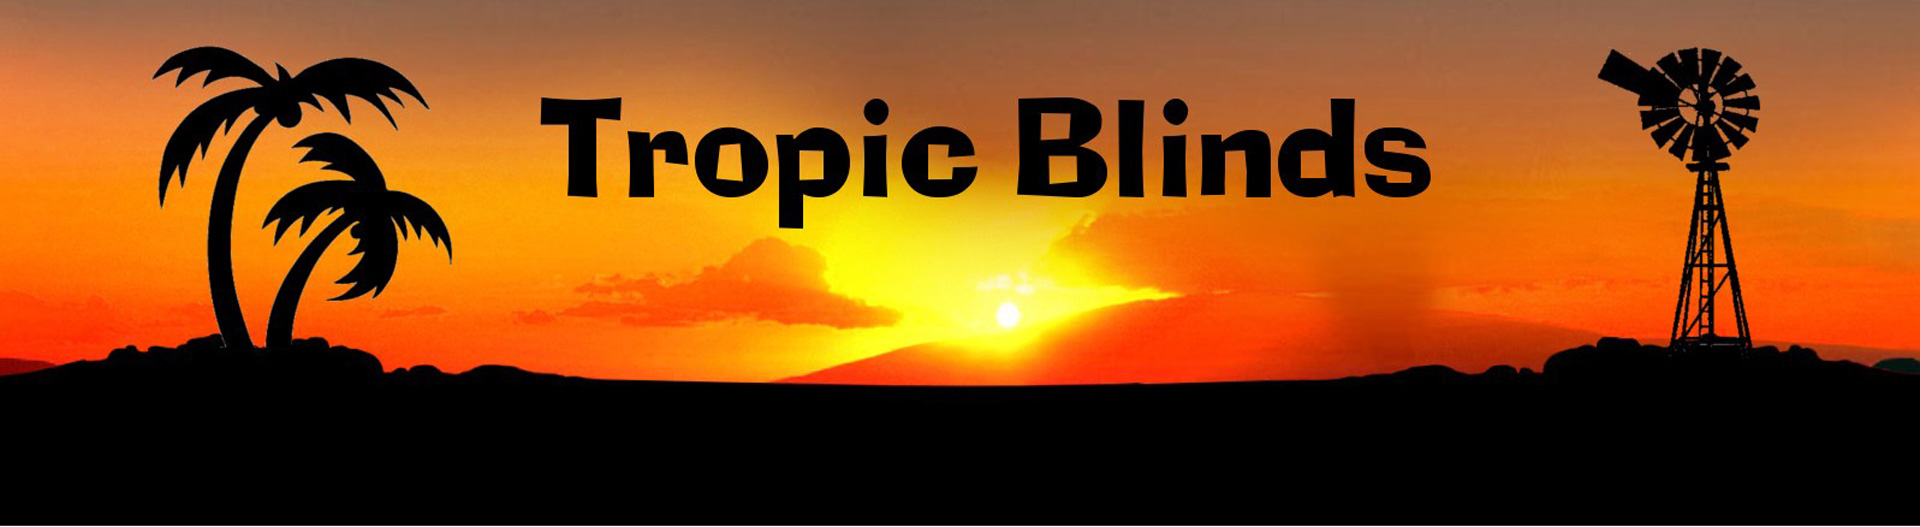 Tropic Blinds